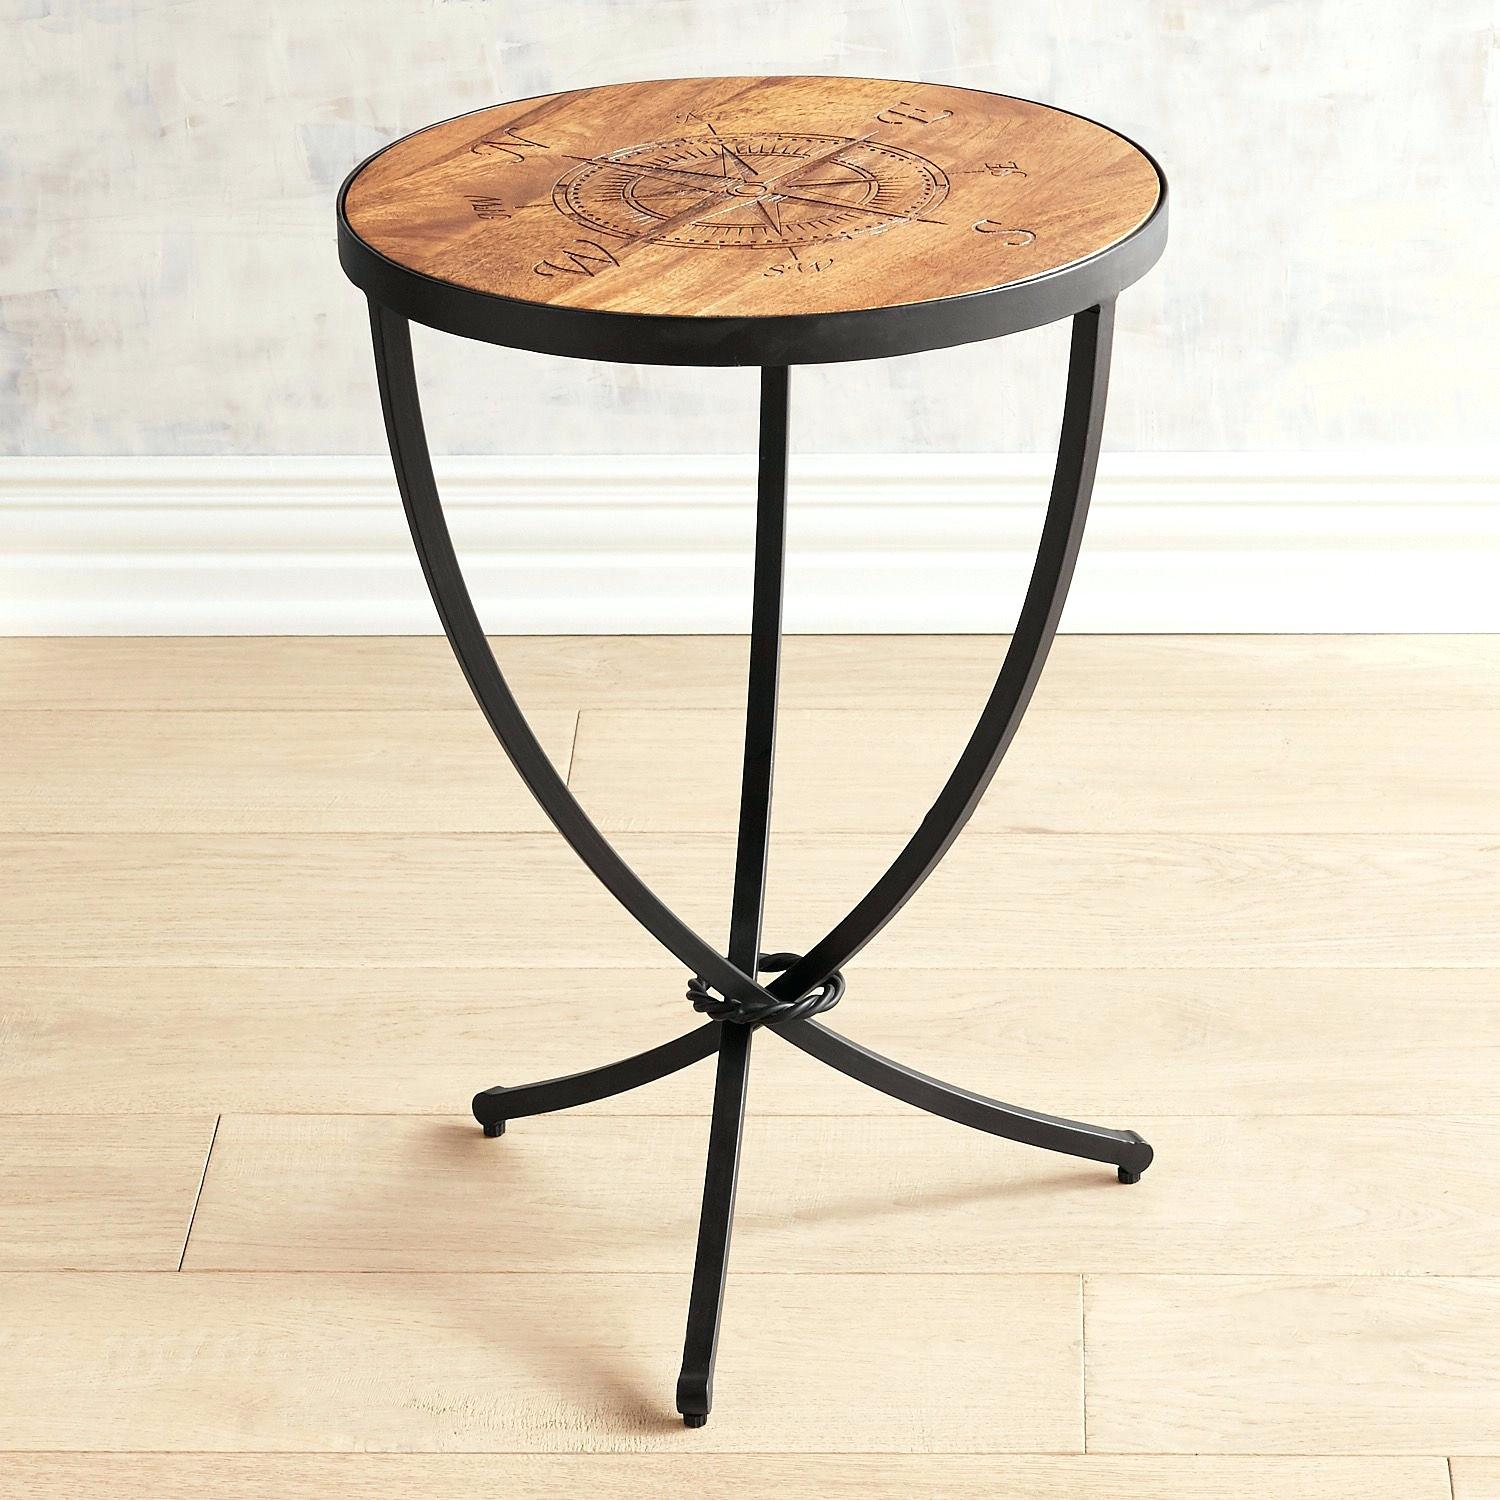 pier one accent tables ella table anywhere inch round black wrought iron outdoor coffee pool covers bunnings dresser drawer garden settings drop side crystal lamps ikea tops bar